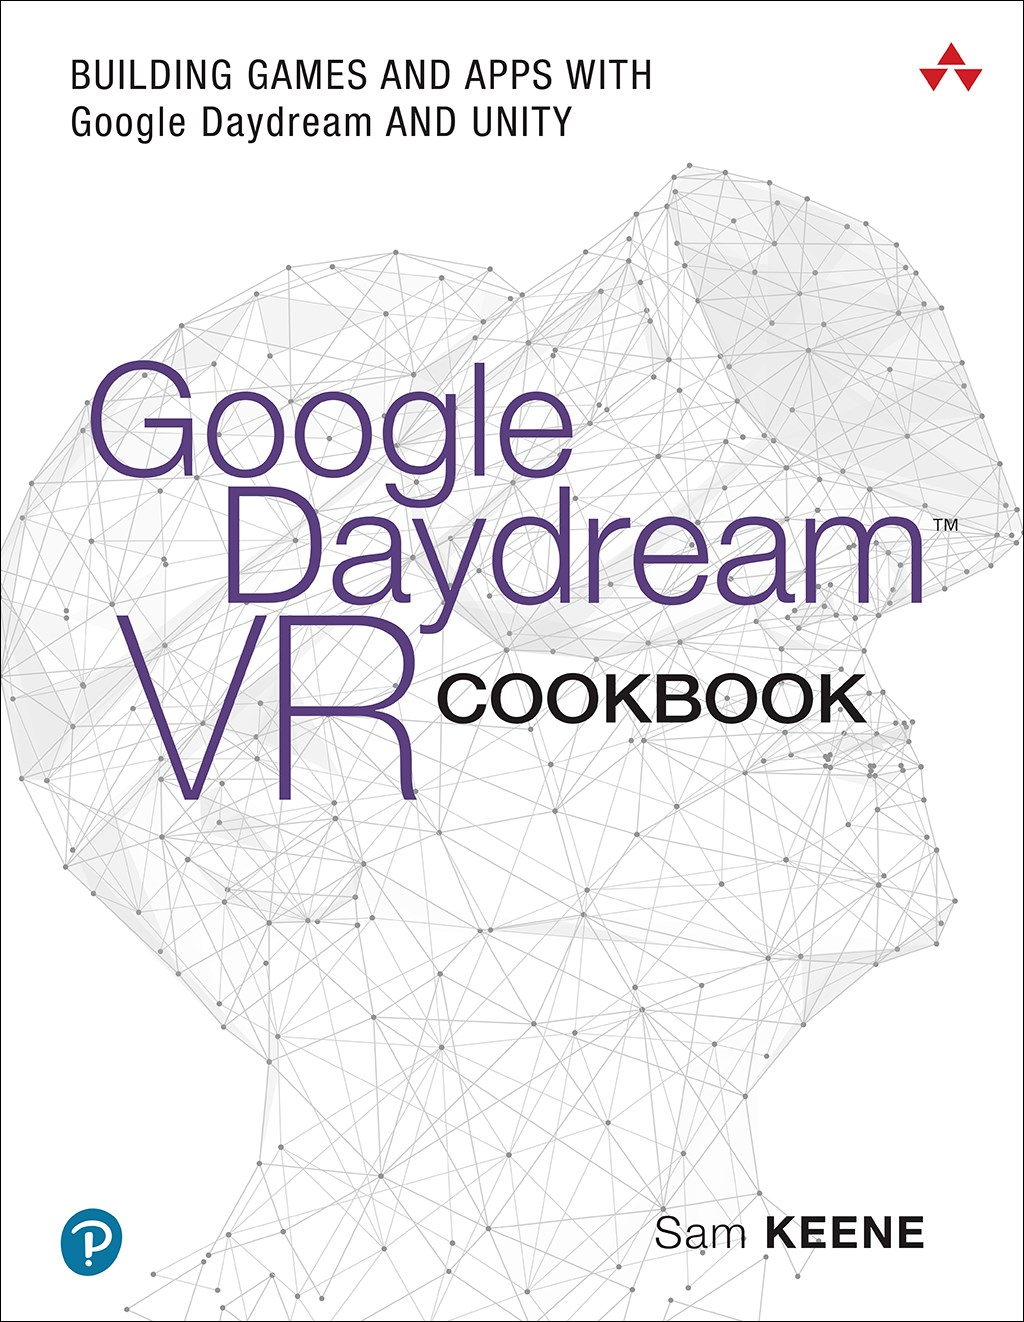 Google Daydream VR Cookbook: Building Games and Apps with Google Daydream and Unity